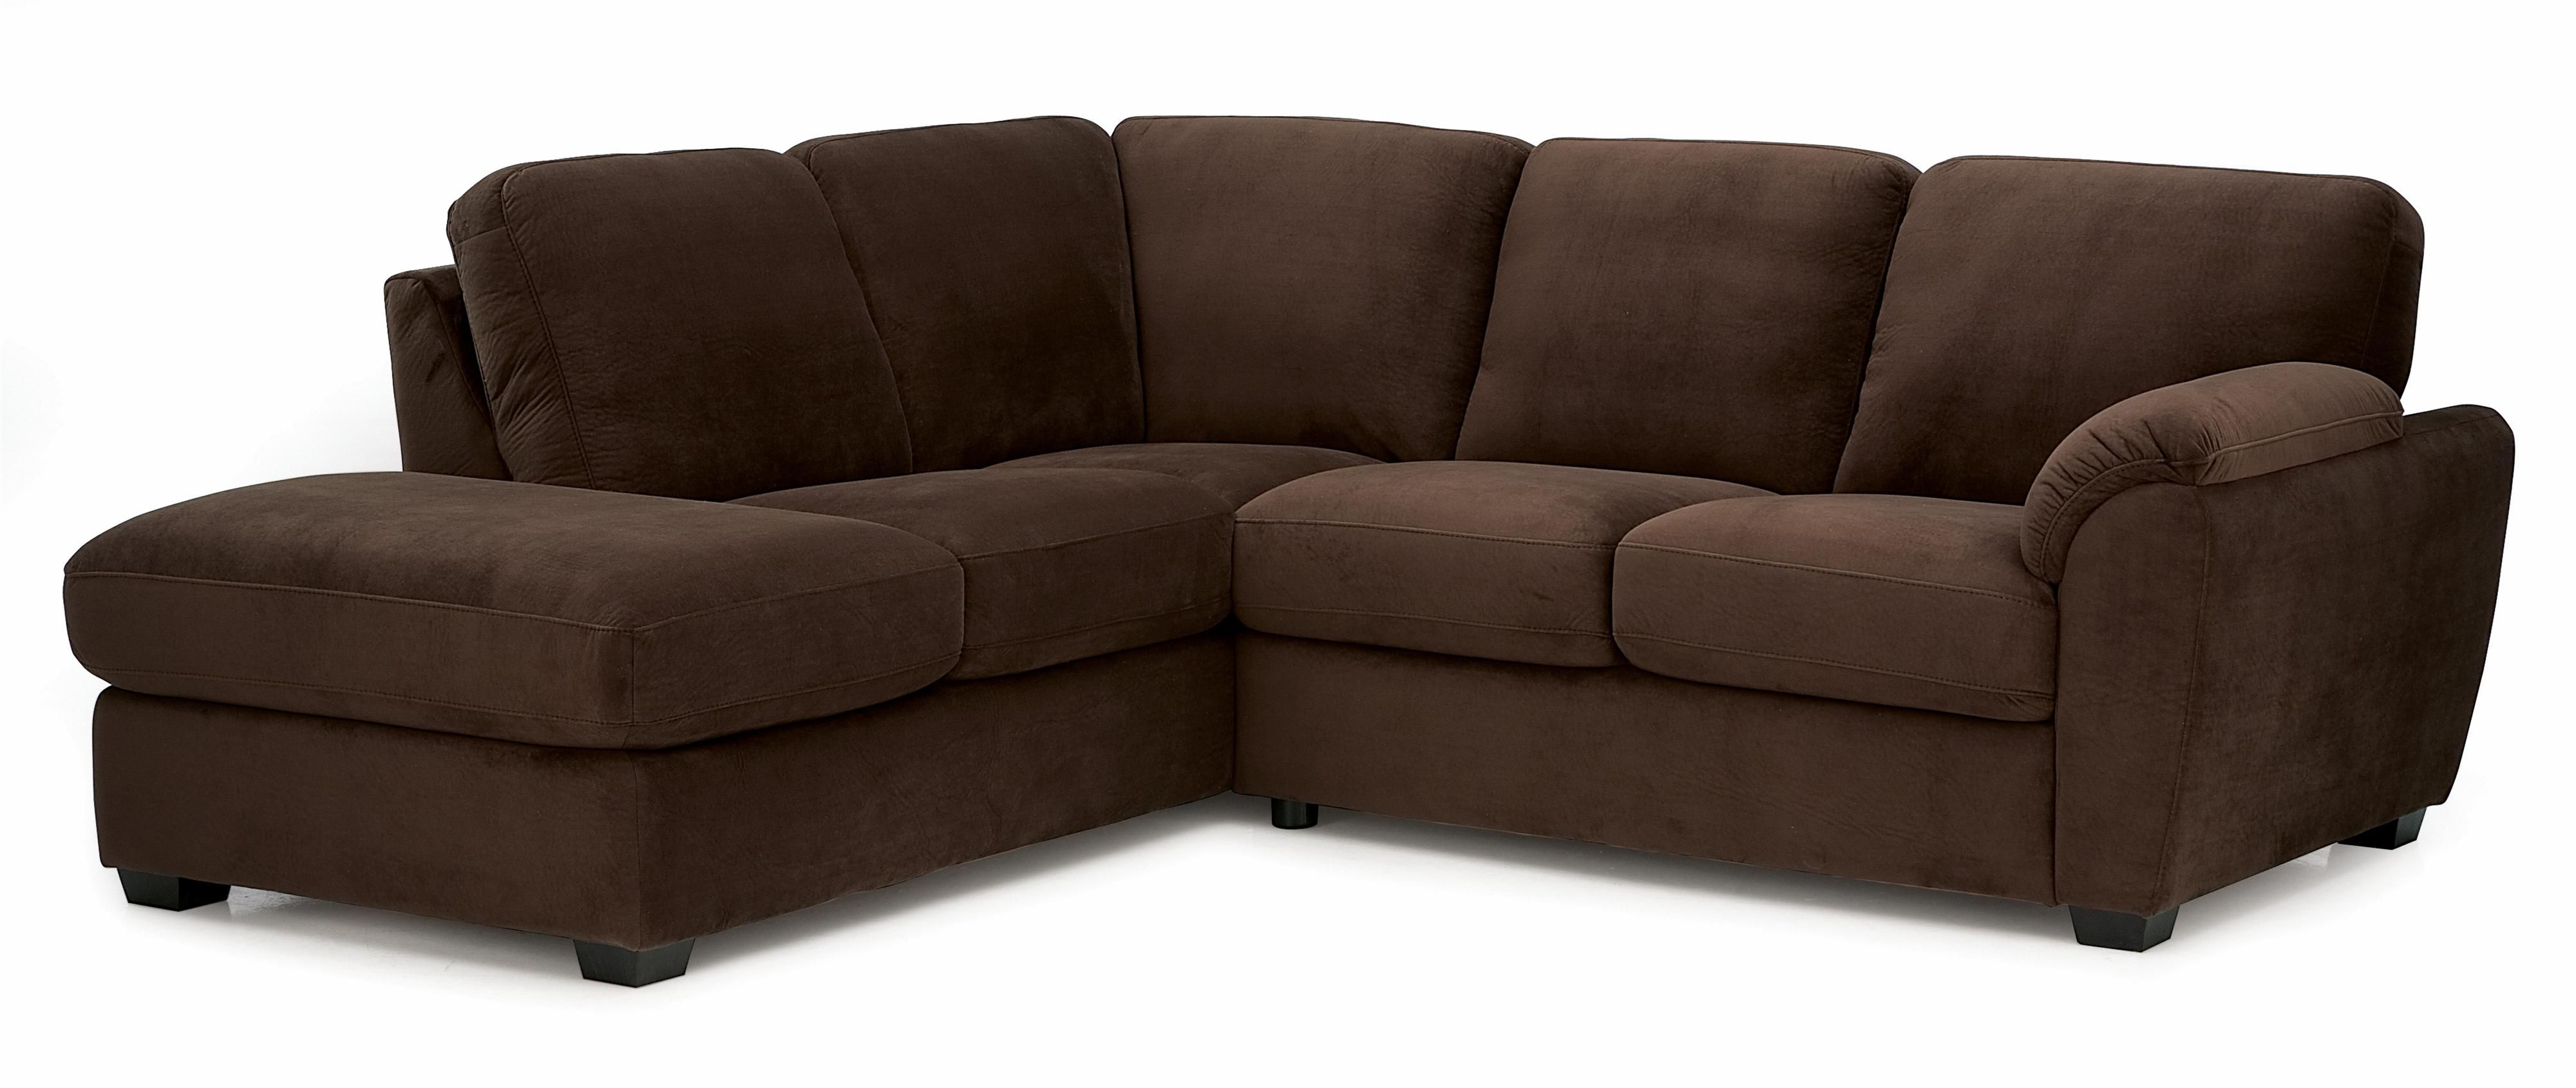 Sofas Hamilton Ontario Super Cinema Sofa Lanza Two Piece Sectional With Rhf Chaise By Palliser